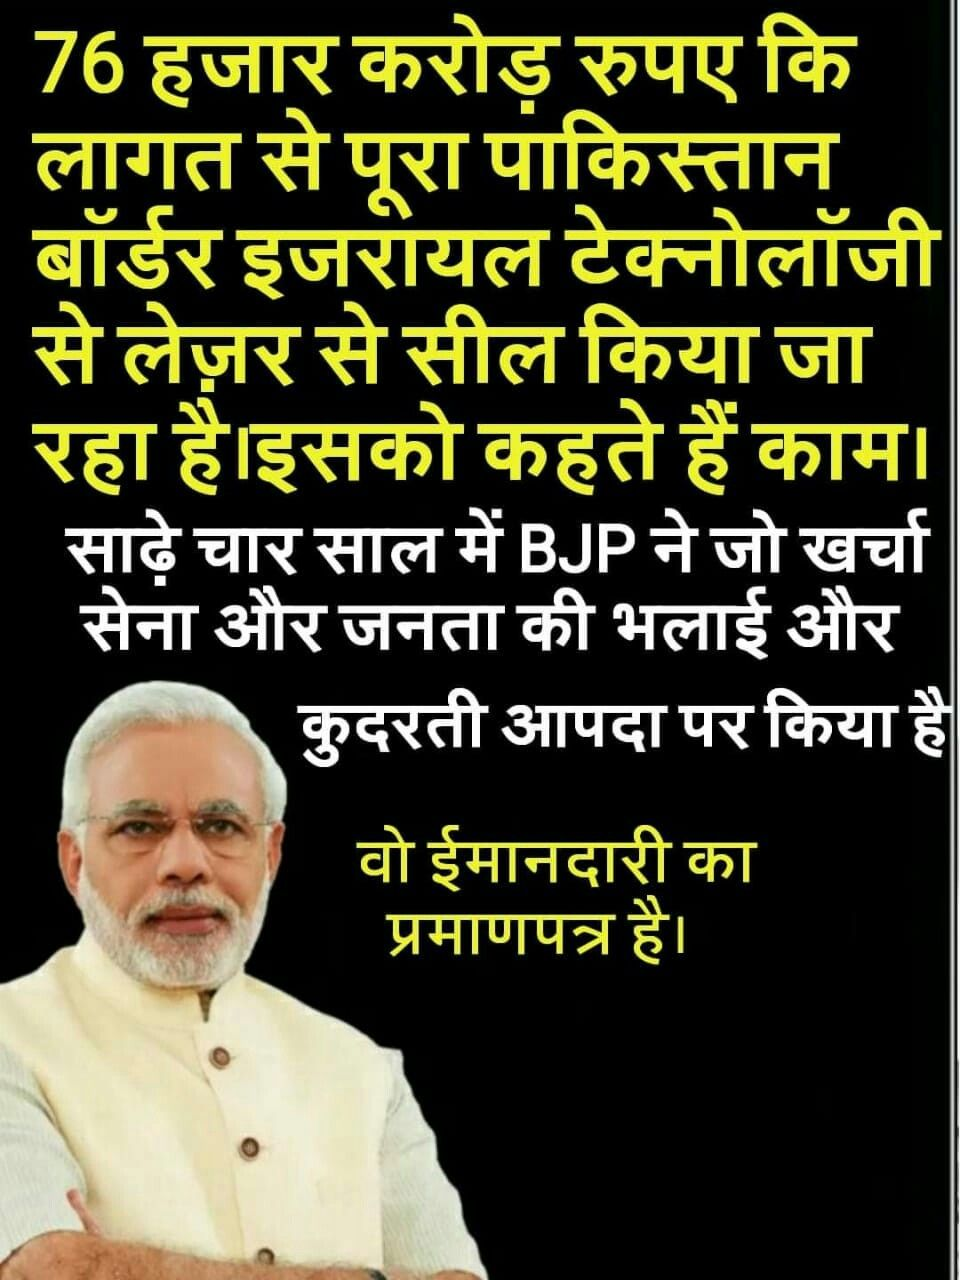 Pin by Narindar Naswa on Vote For B.J.P. (With images